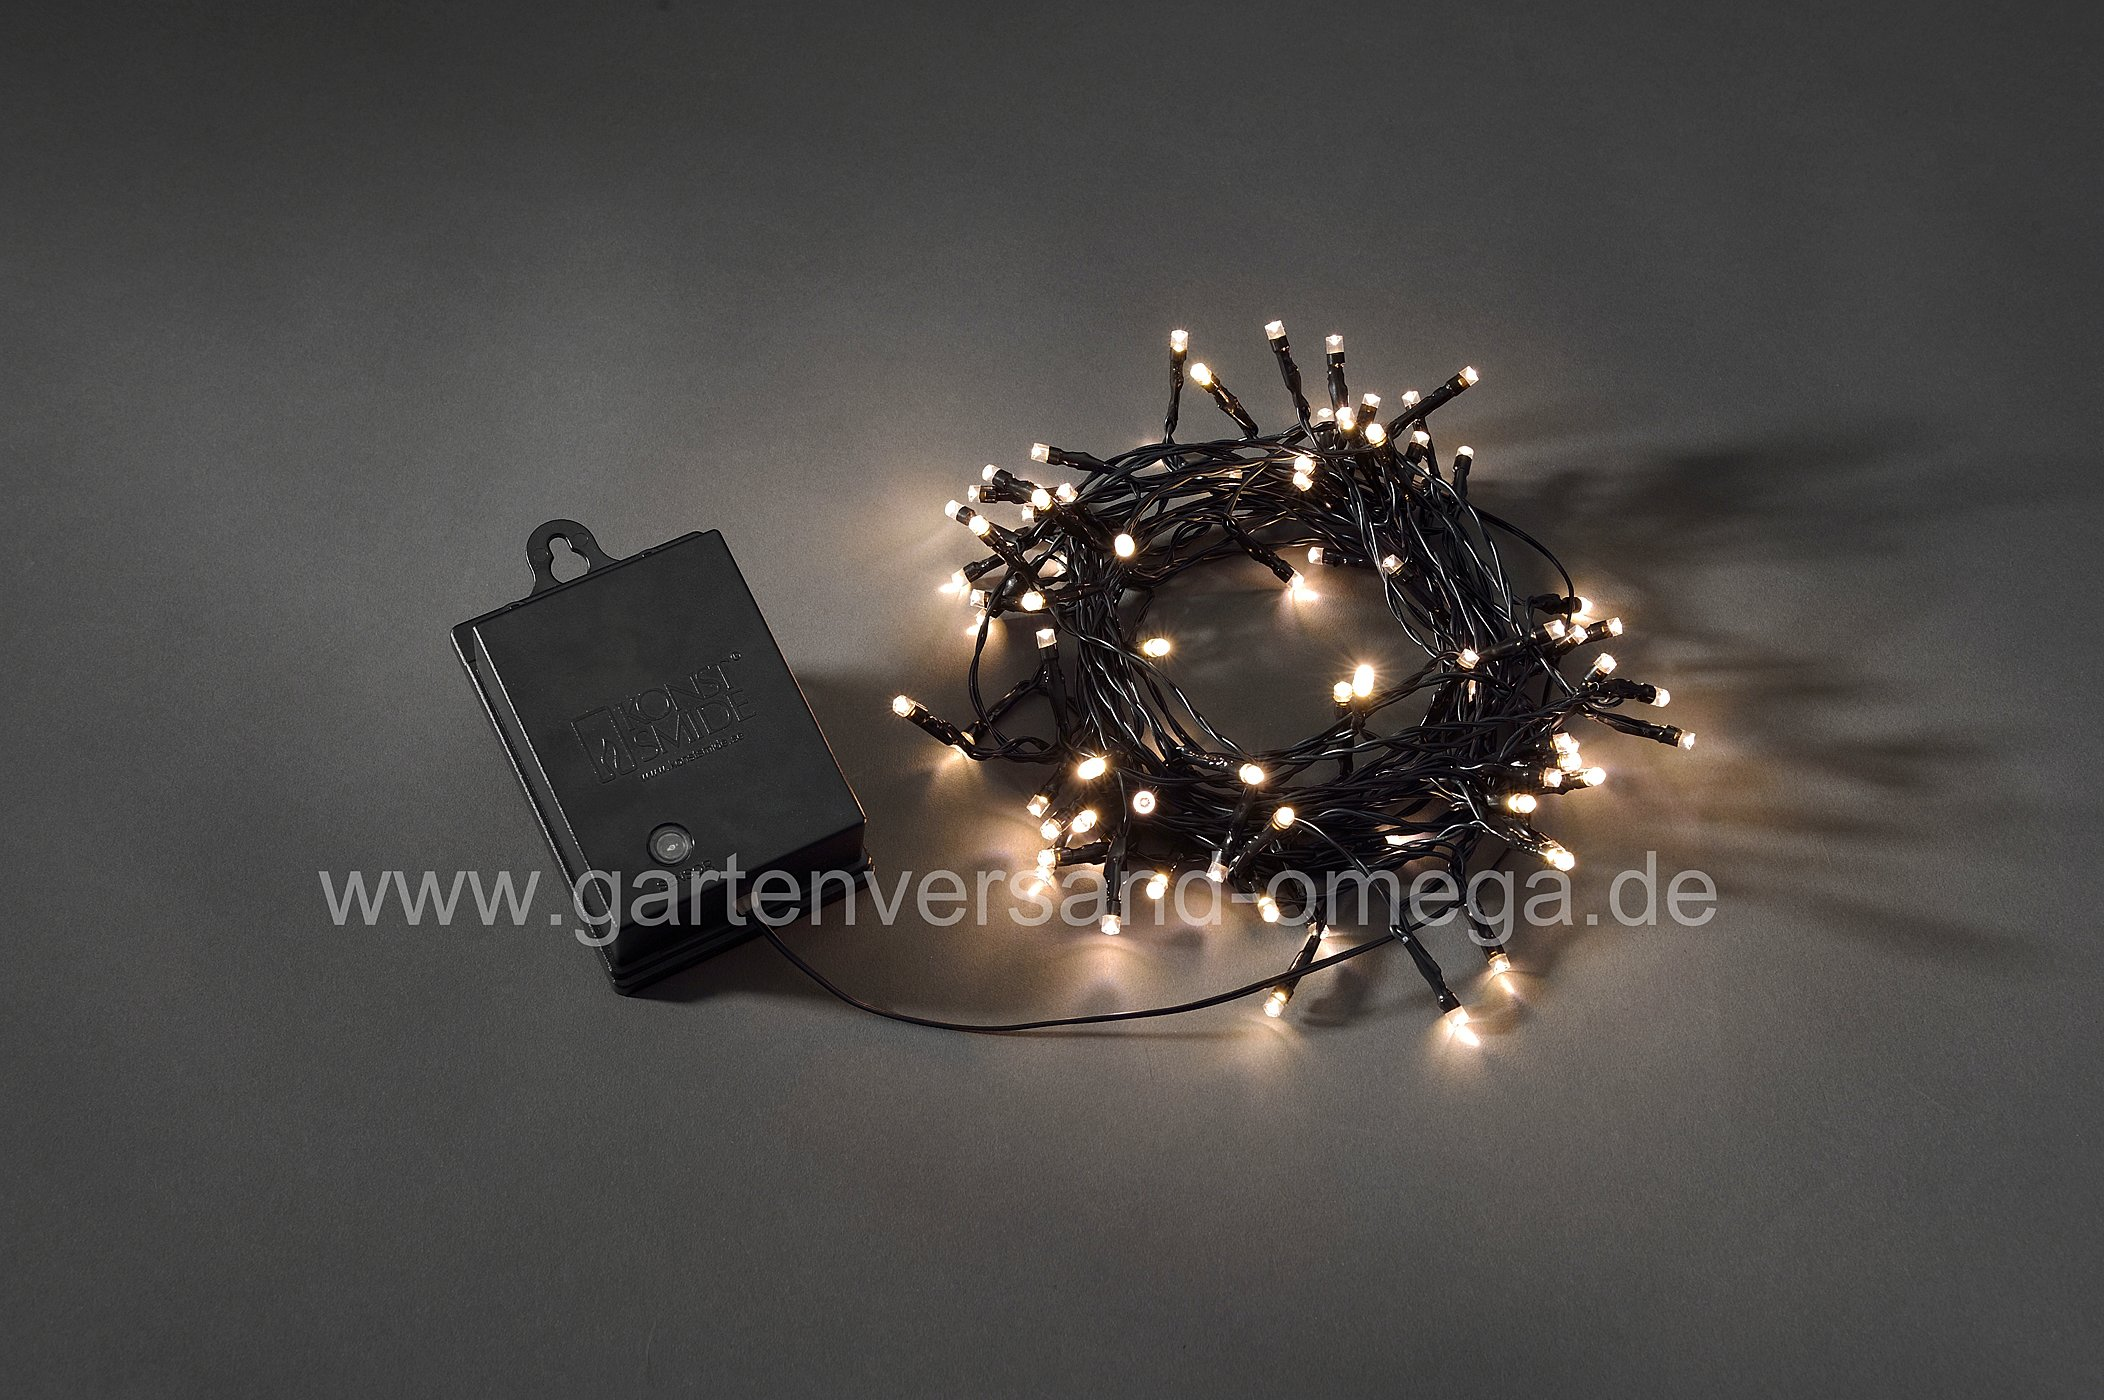 batteriebetriebene led au enlichterkette mit lichteffekten lichterkette f r drau en mit. Black Bedroom Furniture Sets. Home Design Ideas